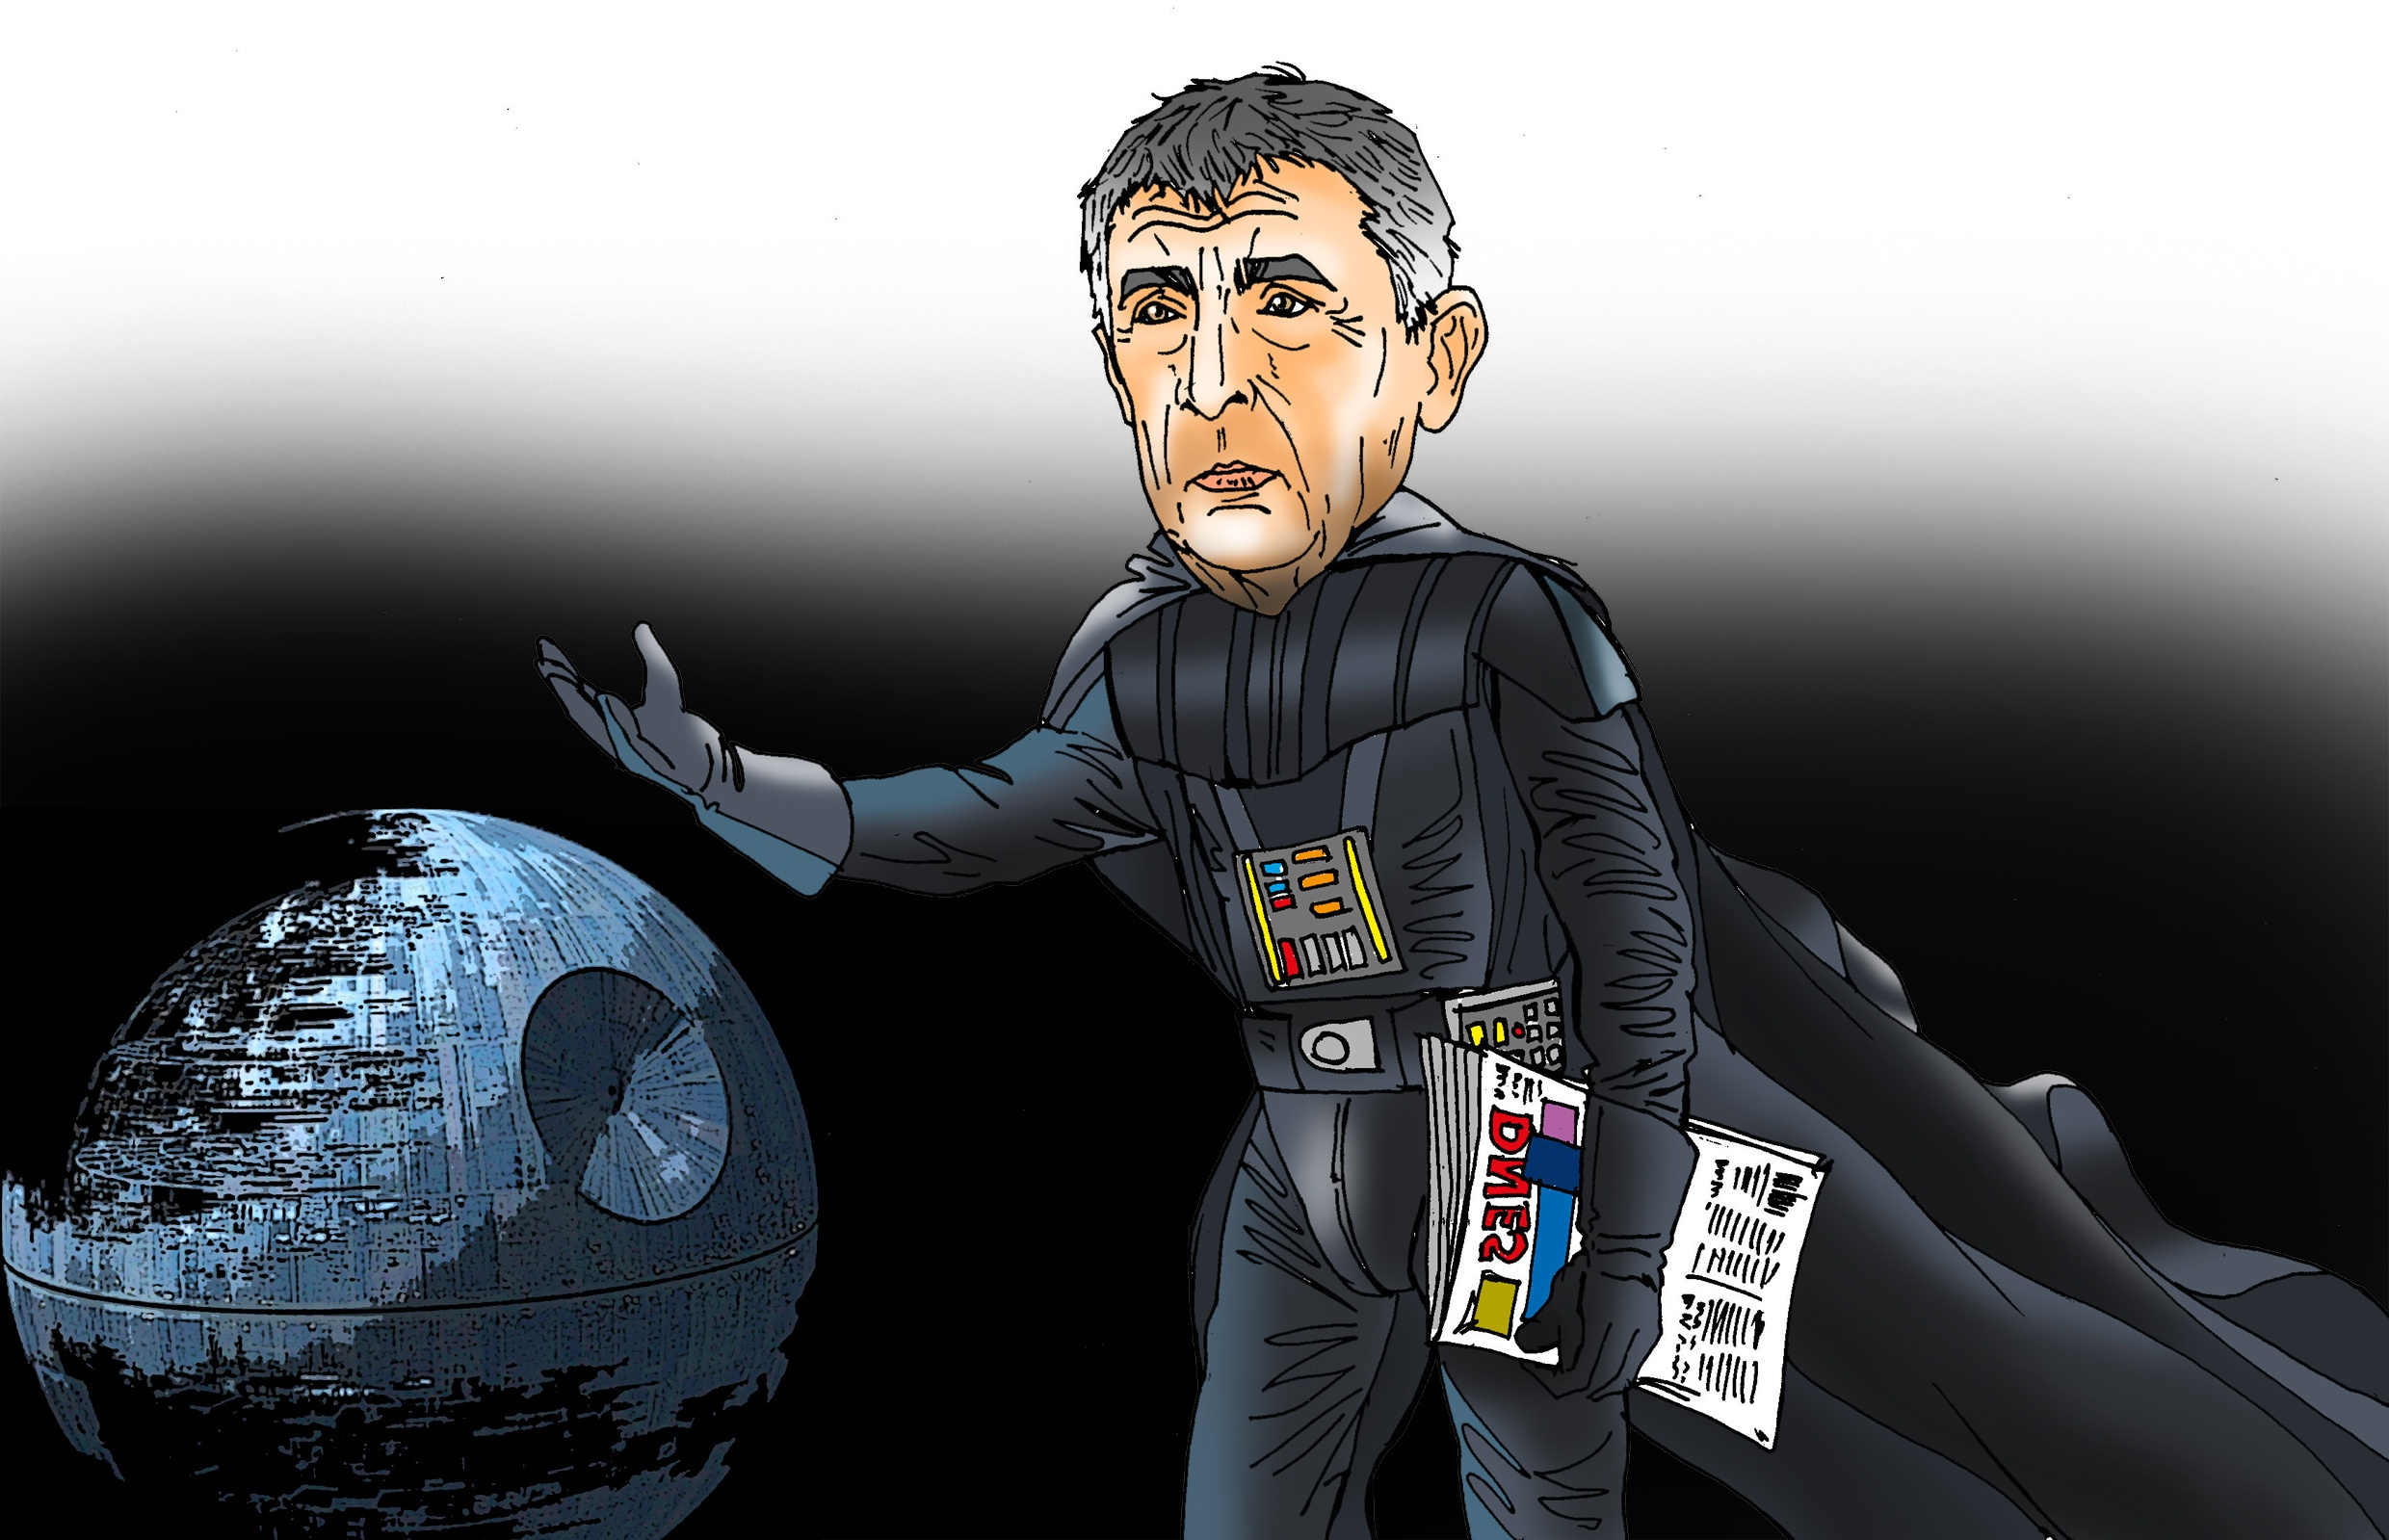 Babis Fails to Impress - Policy Statement Dismissed as 'Fairy Tale' - Czech Points